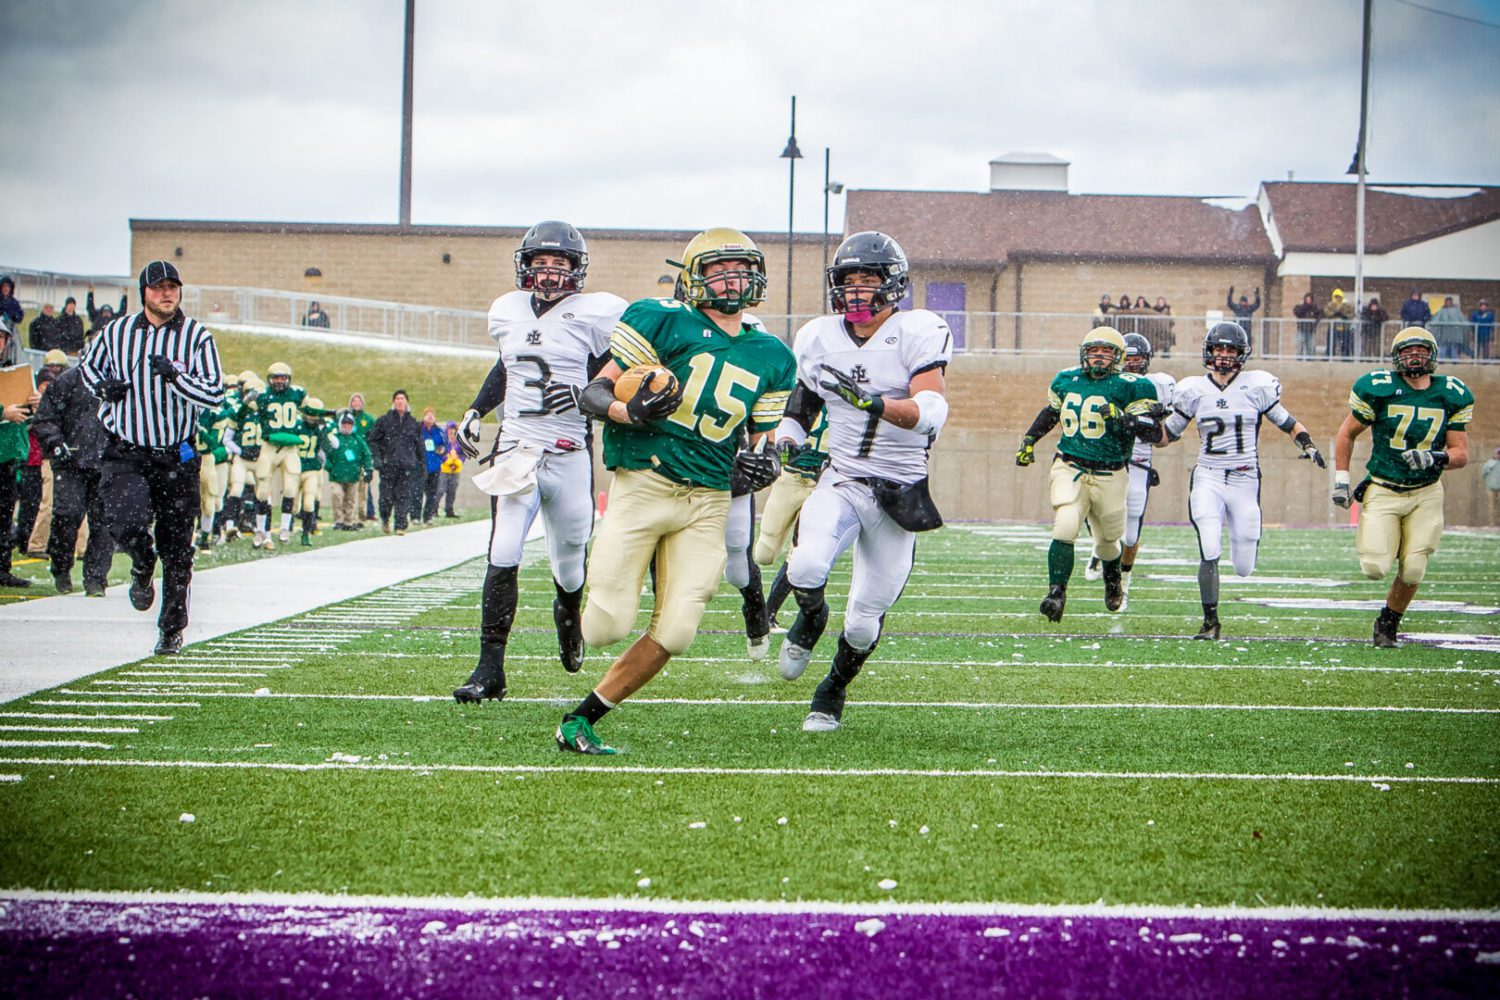 Muskegon Catholic powers by previously undefeated New Lothrop; heading to Ford Field with Division 8 state title on the line